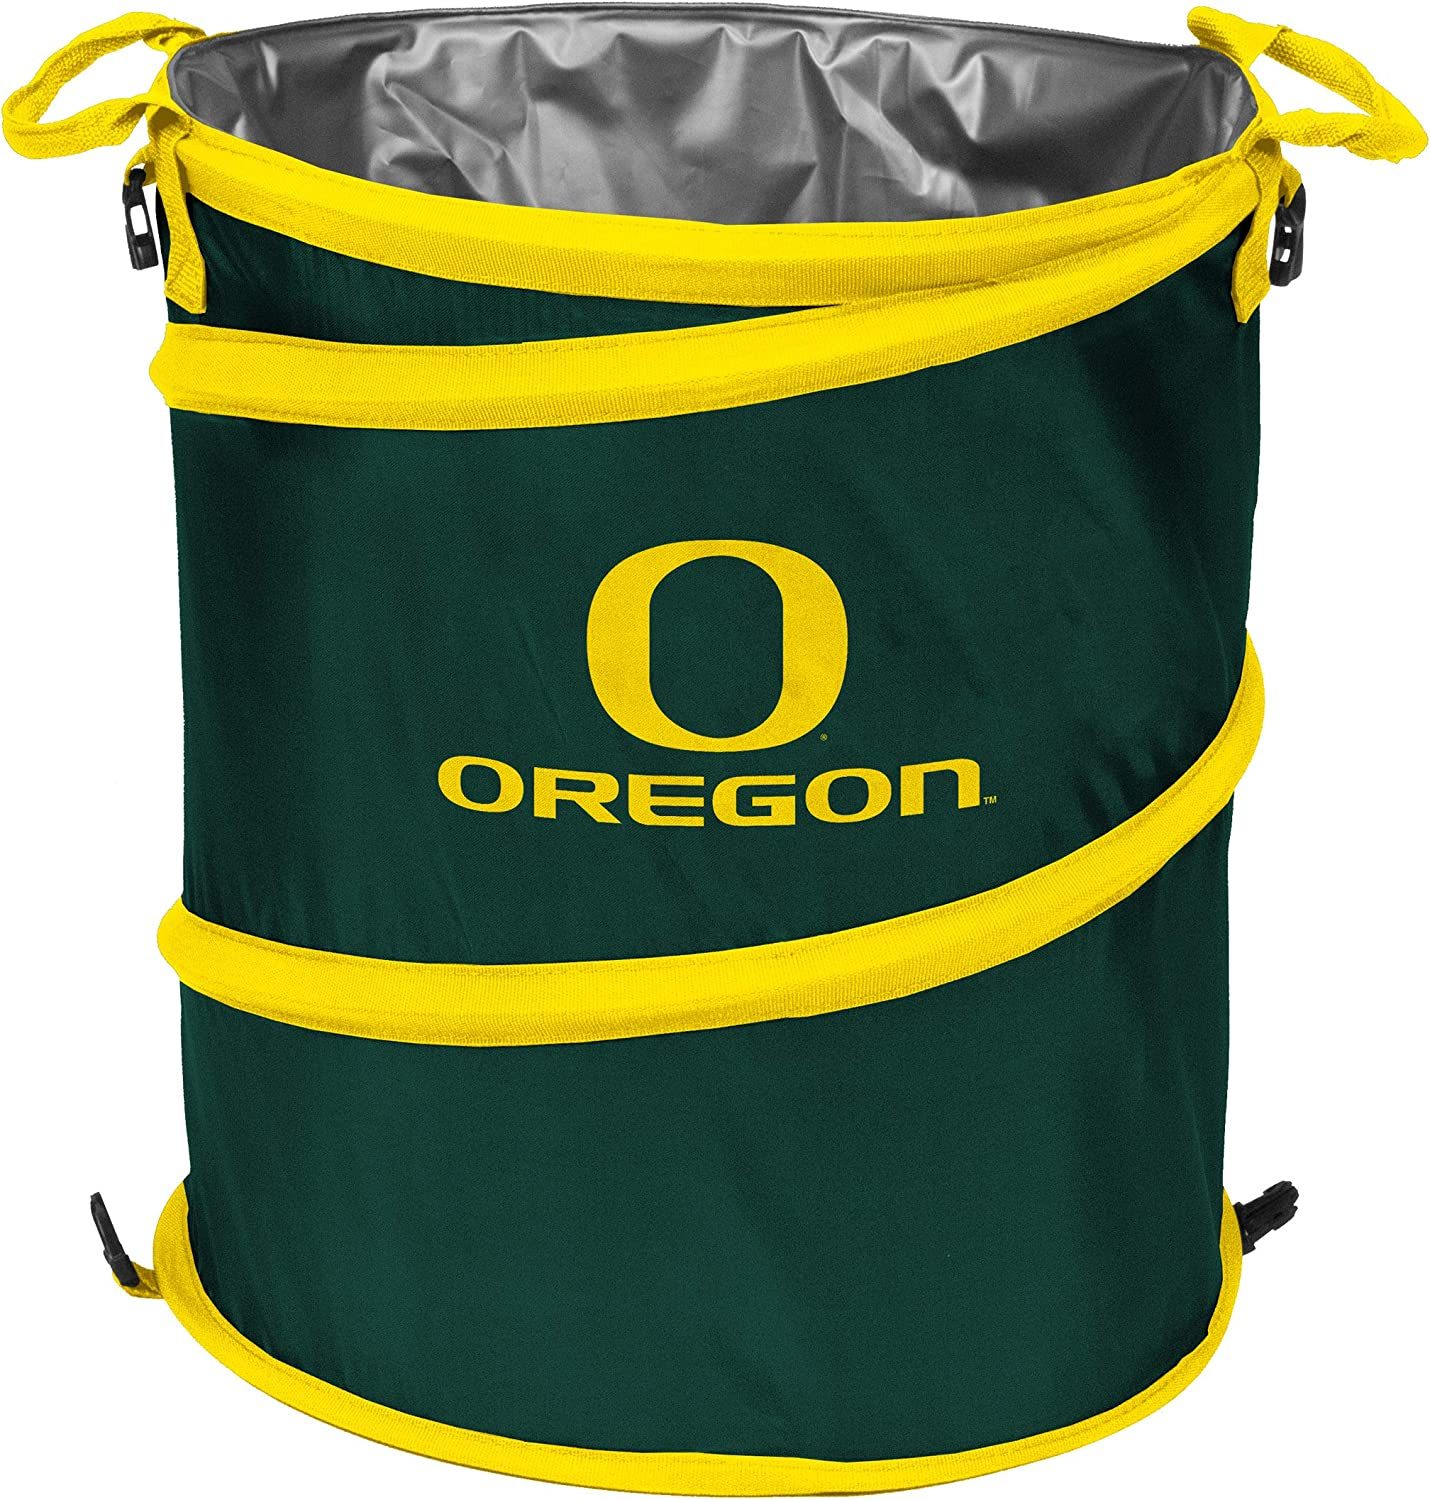 Adult Green NCAA Oregon Ducks Collapsible 3-in-1 Trash Can